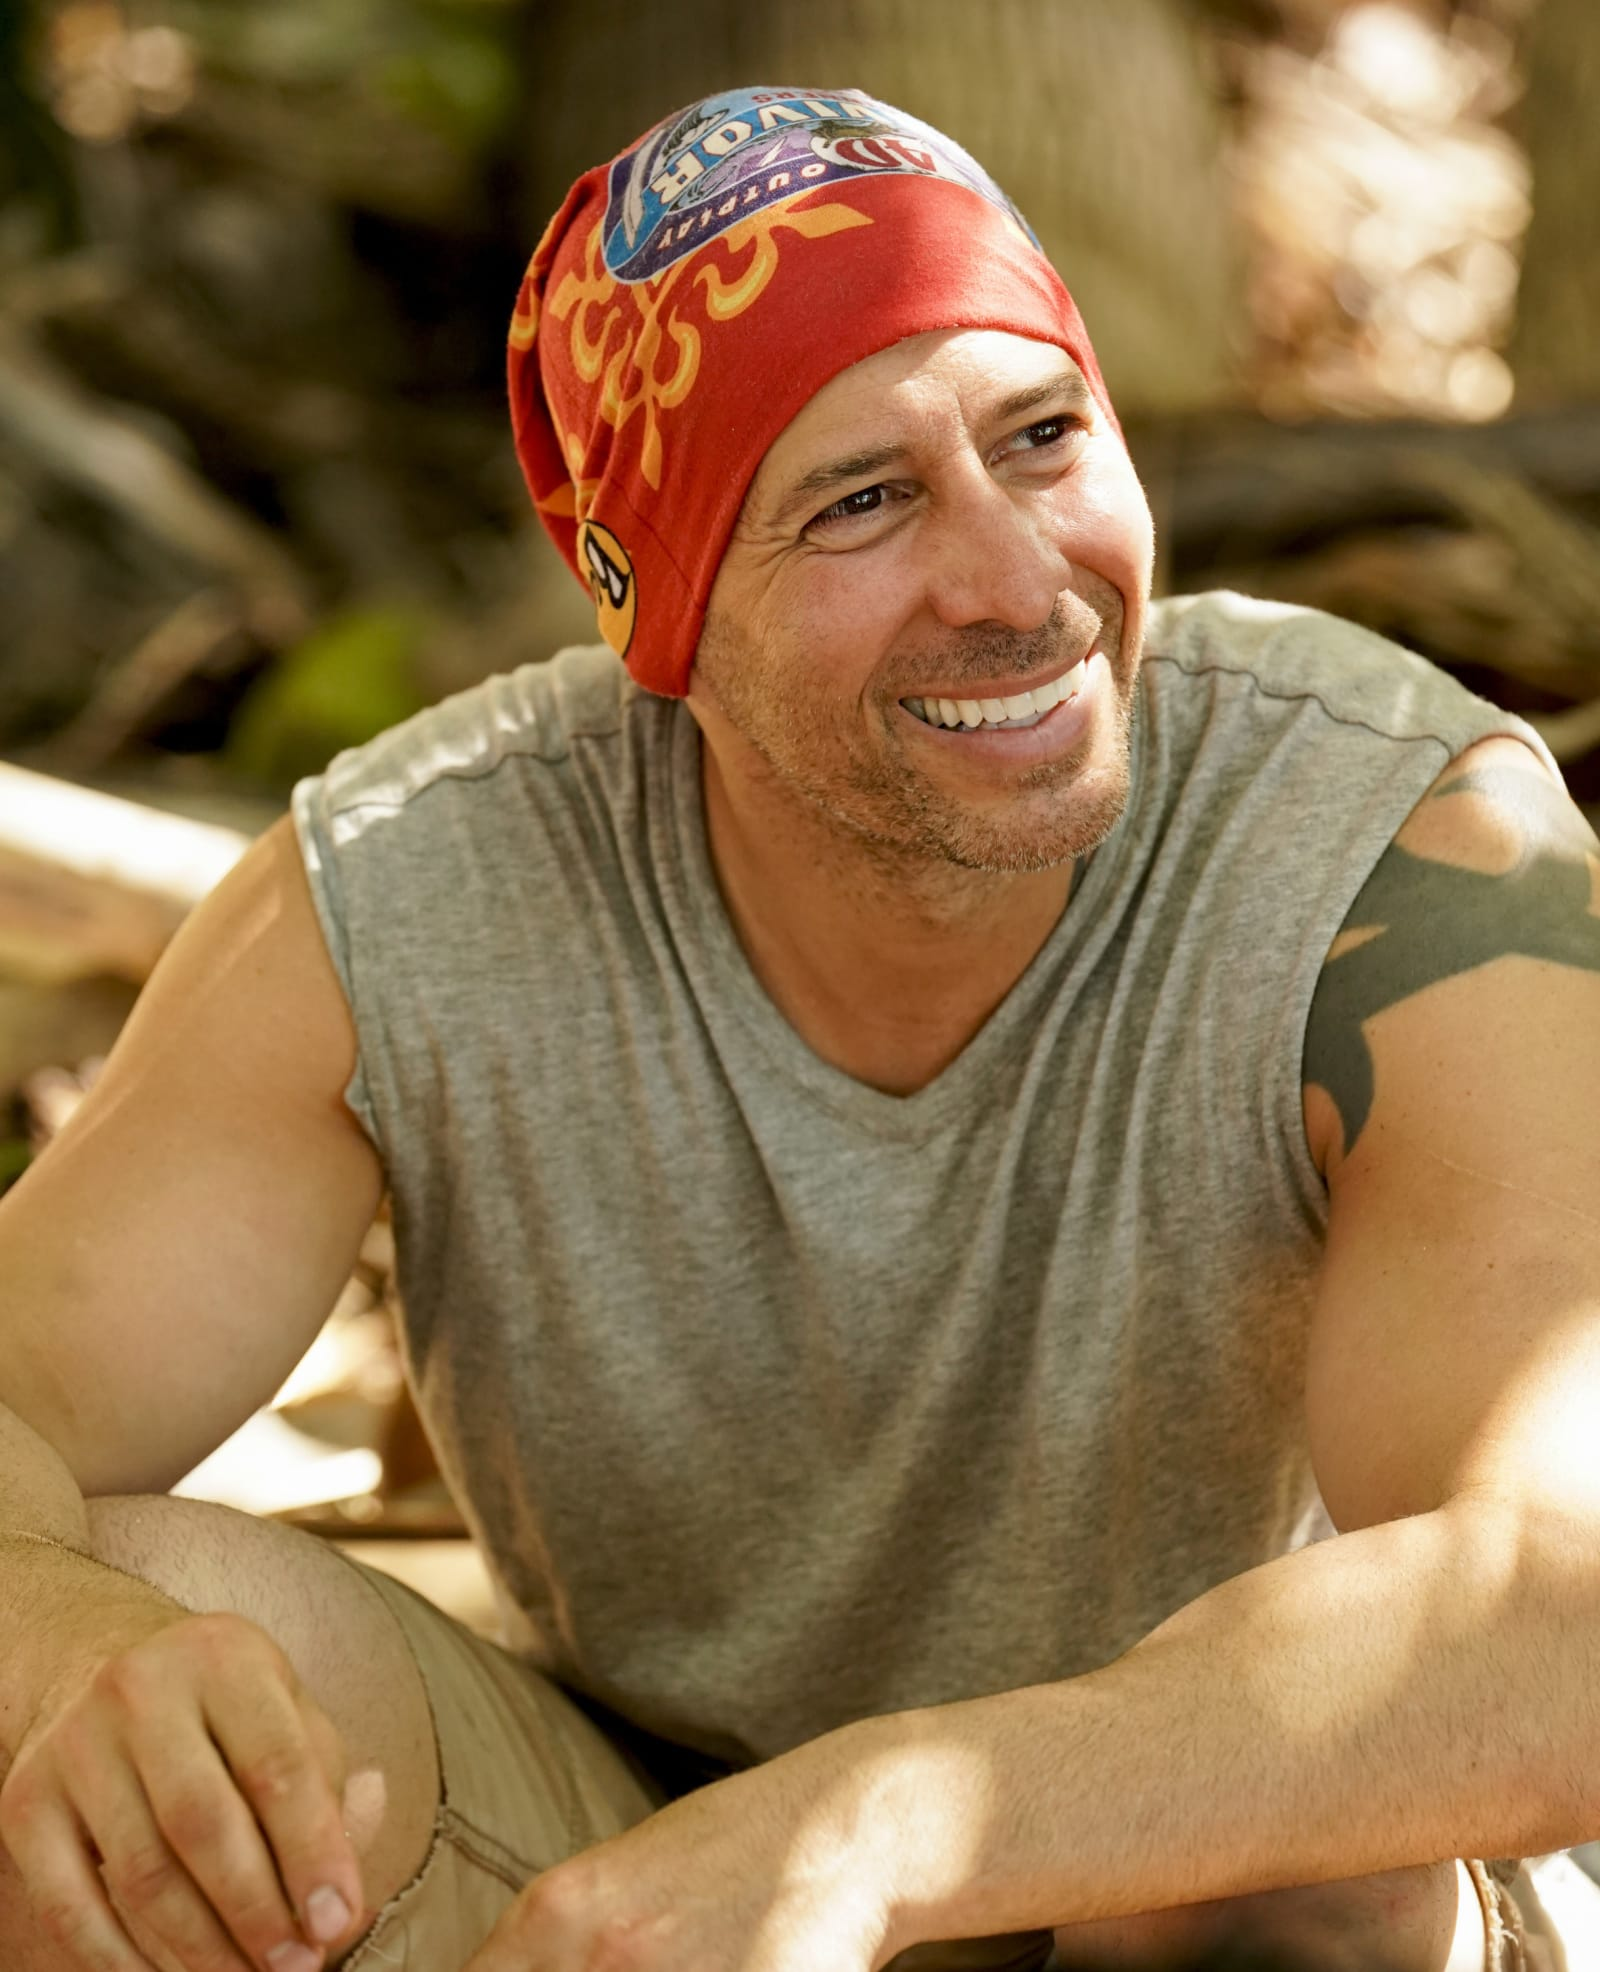 Tony Vlachos Survivor Winners at War episode 2